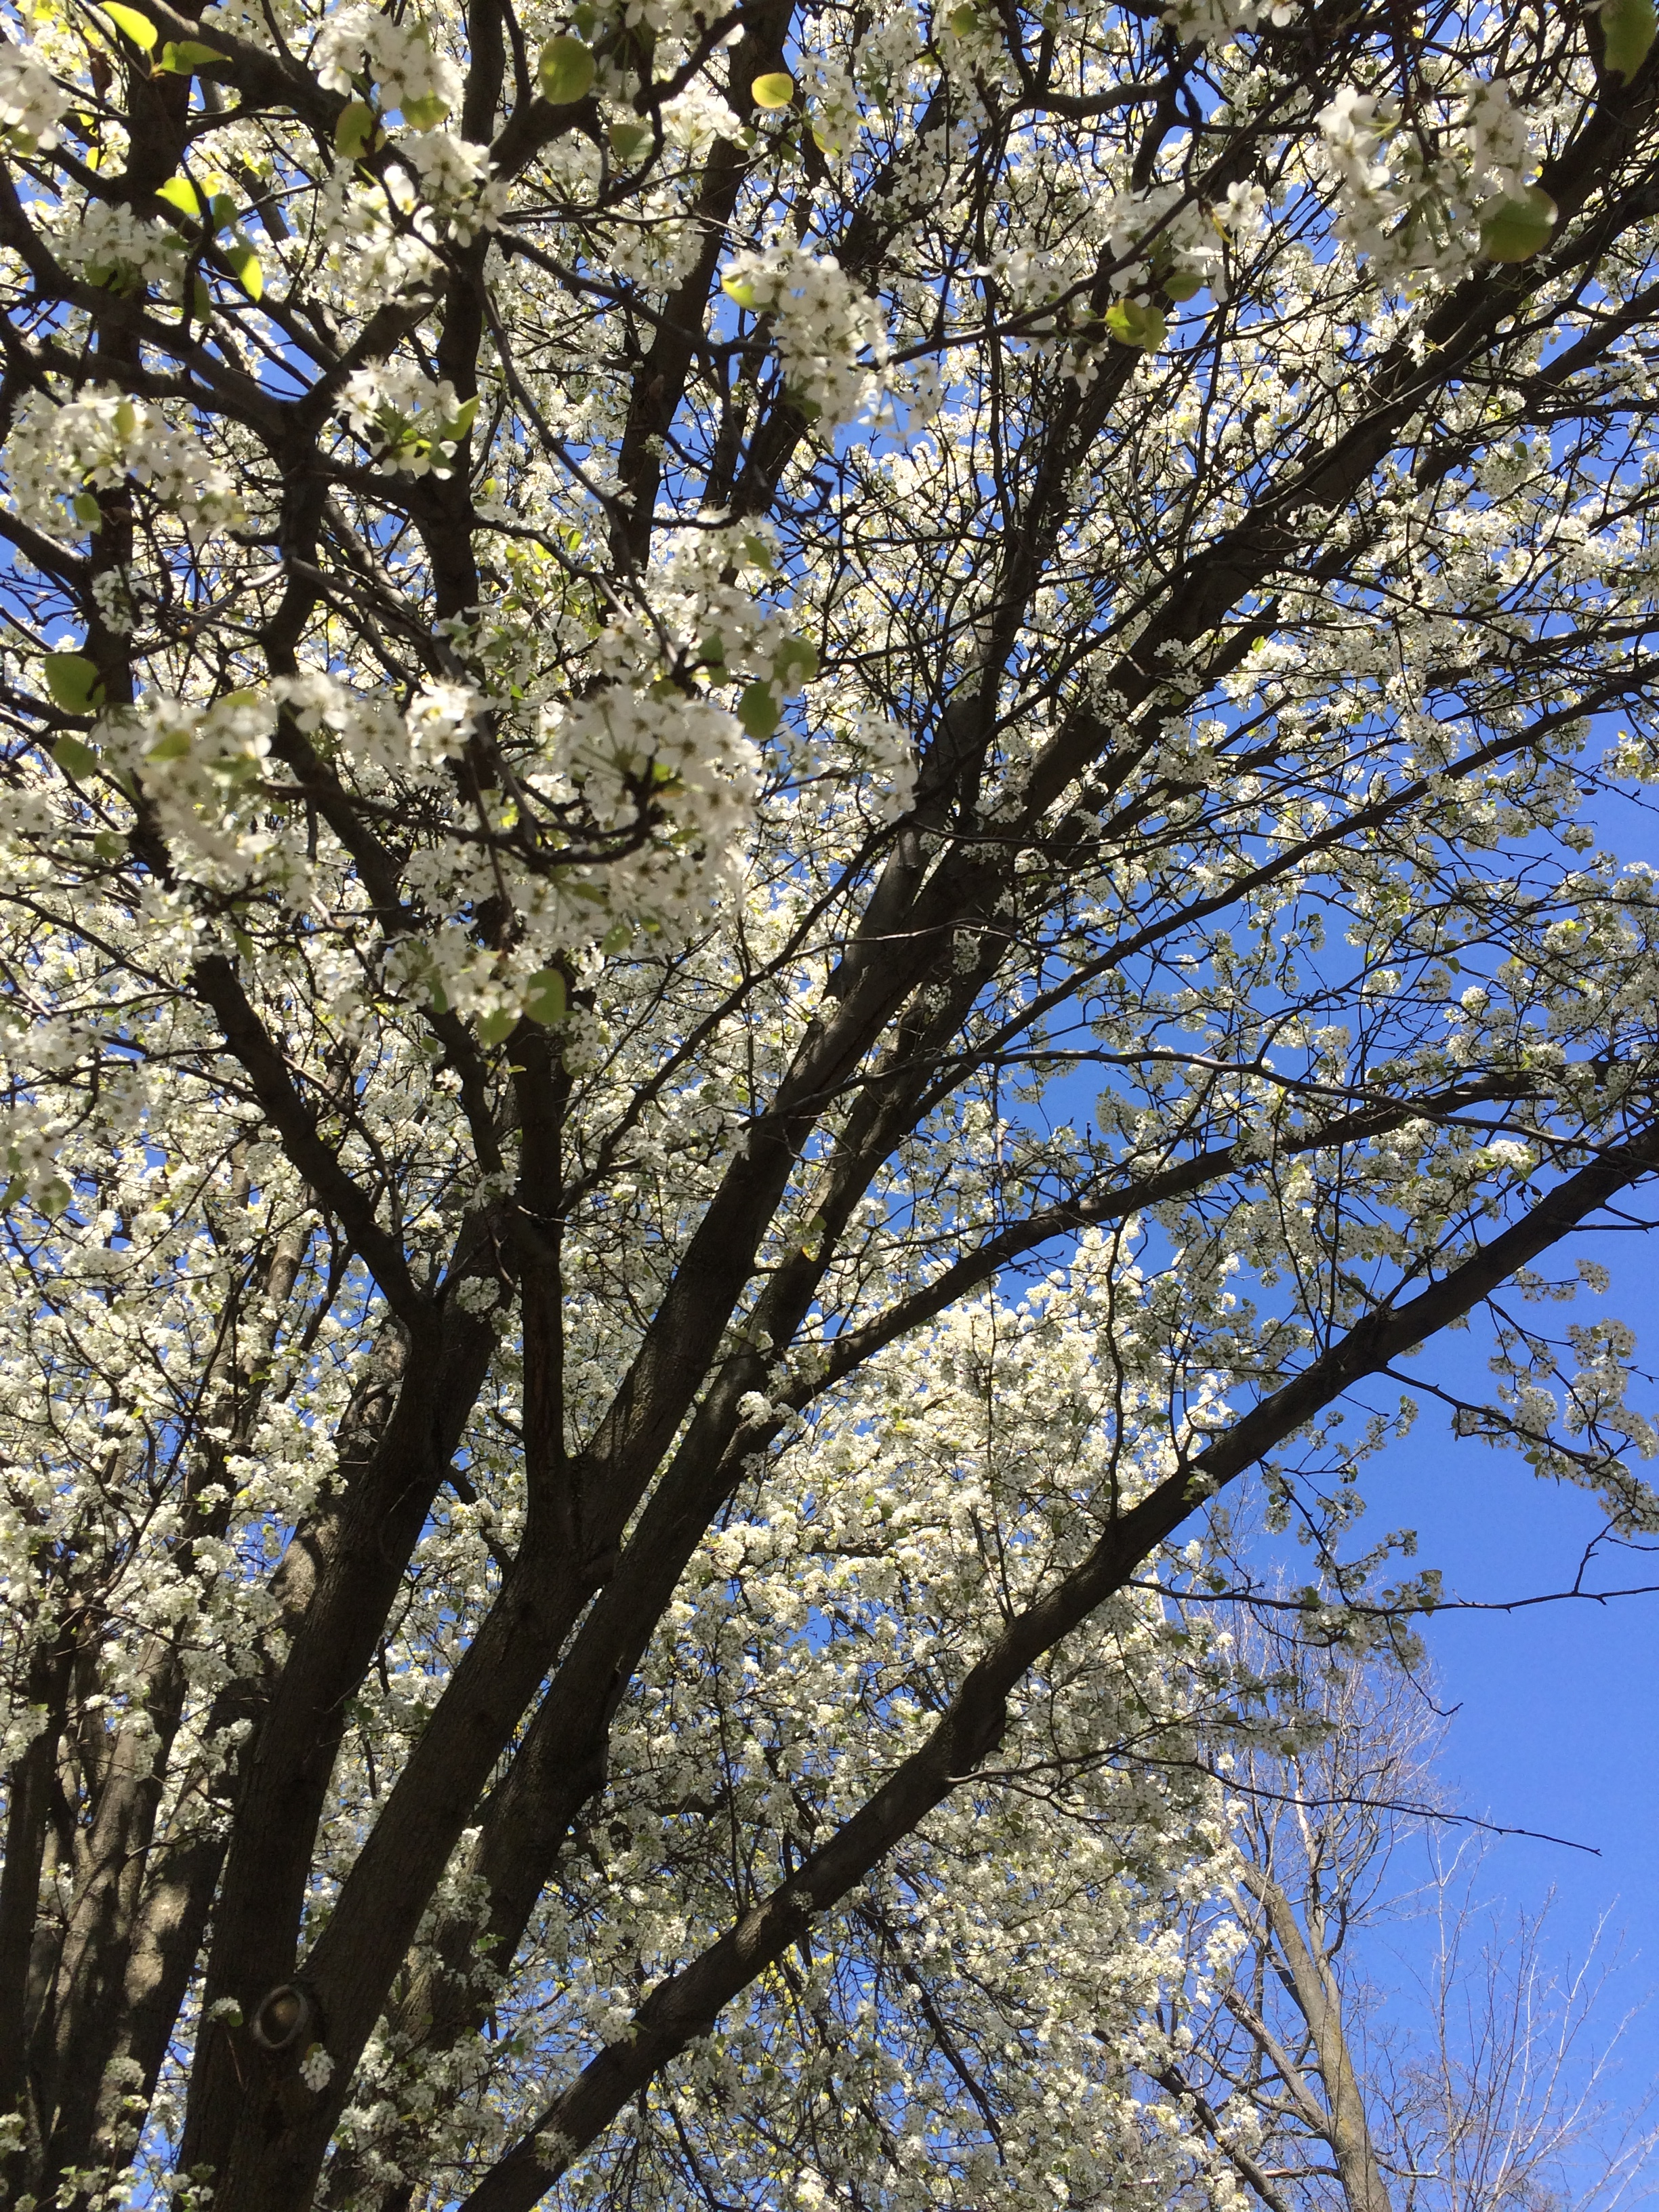 Flowering trees were calling me a stroll through chestnut hill to wit two or three days after the 9th i began to spot some flowering trees in bloom finally spring was coming out from behind the curtains izmirmasajfo